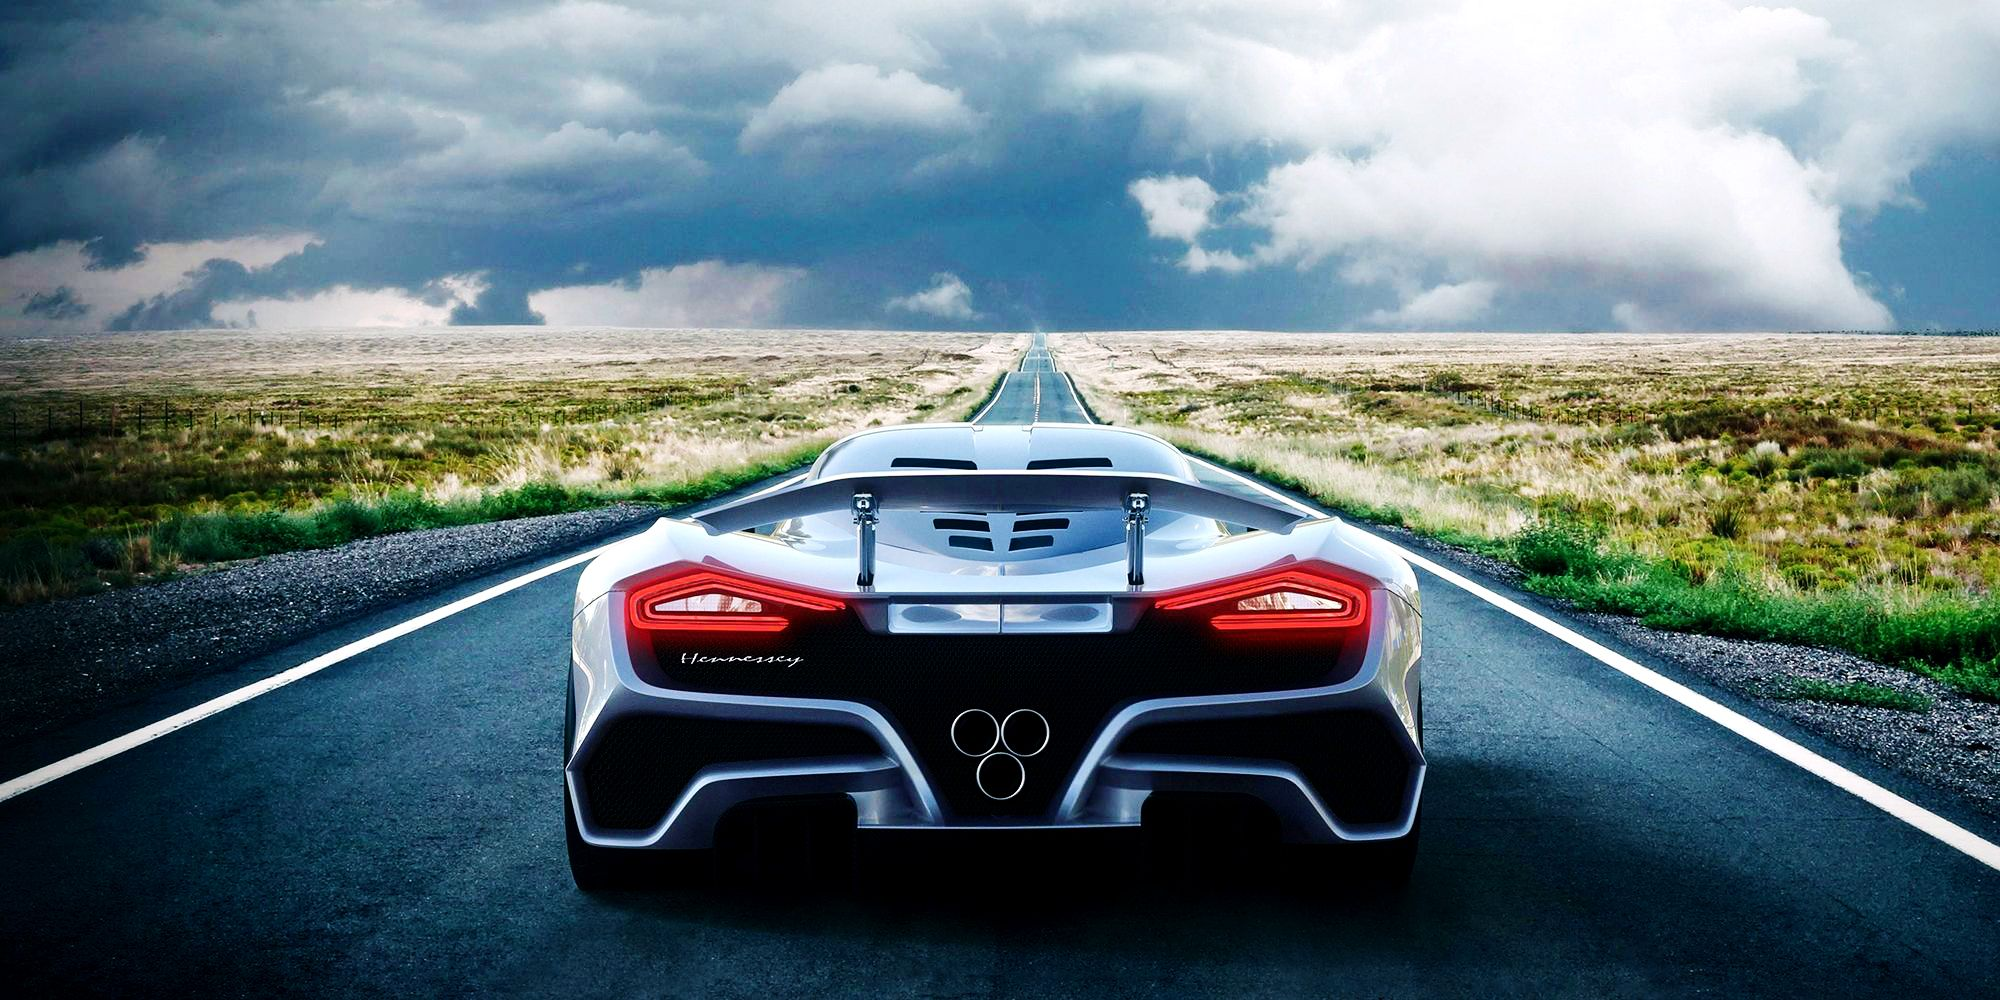 Hennessey\'s Venom F5 Could Be the Fastest Car in the World